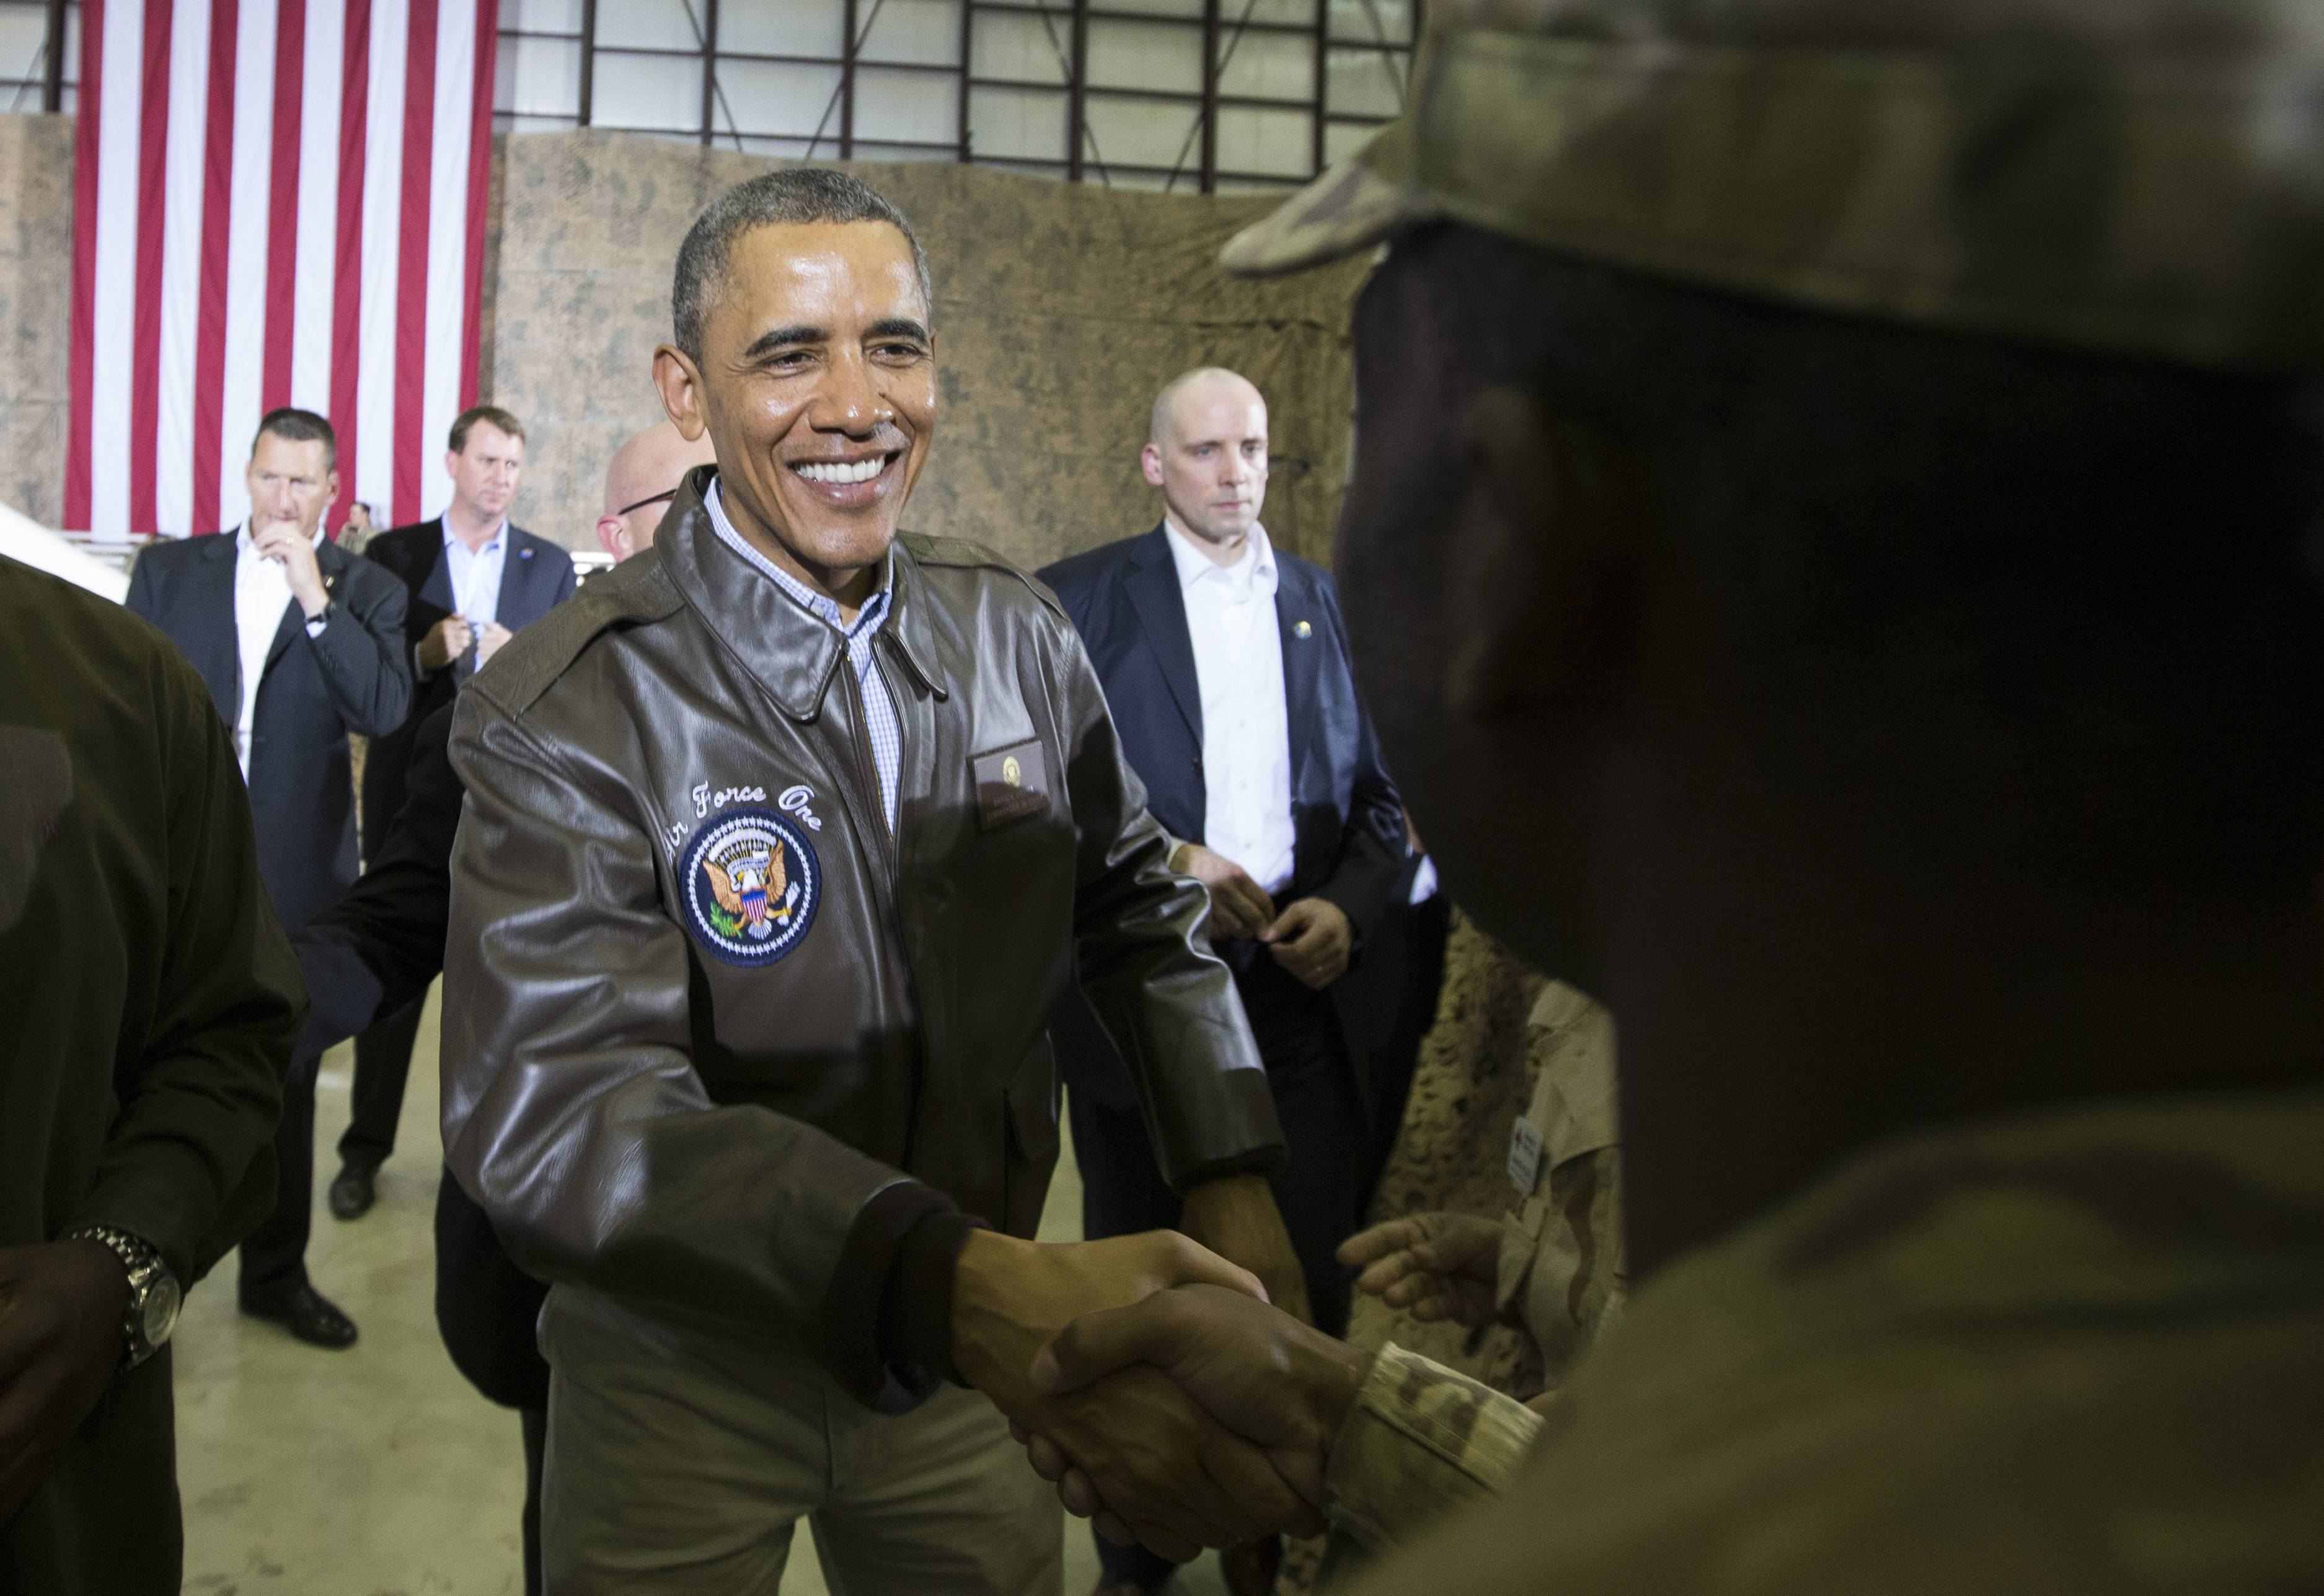 President Barack Obama shakes hands during a troop rally at Bagram Air Field, north of Kabul, Afghanistan.